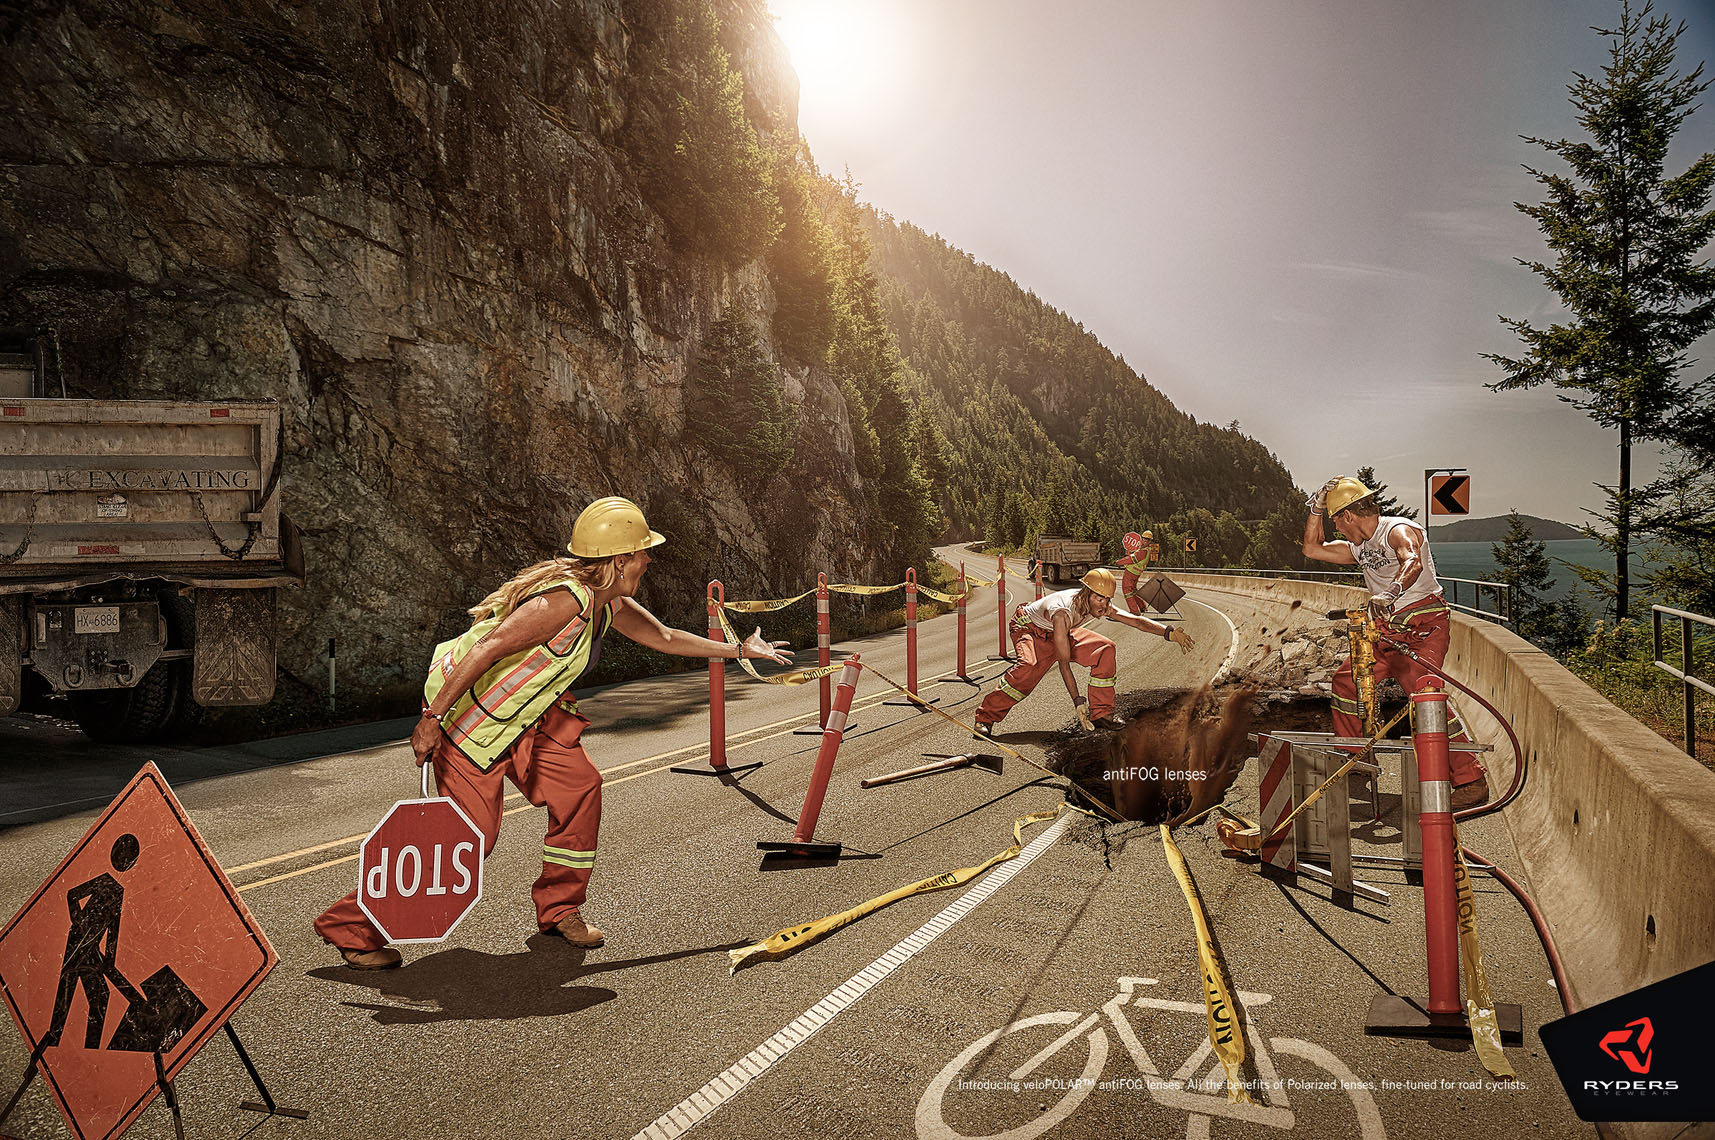 advertising photography by Vancouver advertising photographer Waldy Martens